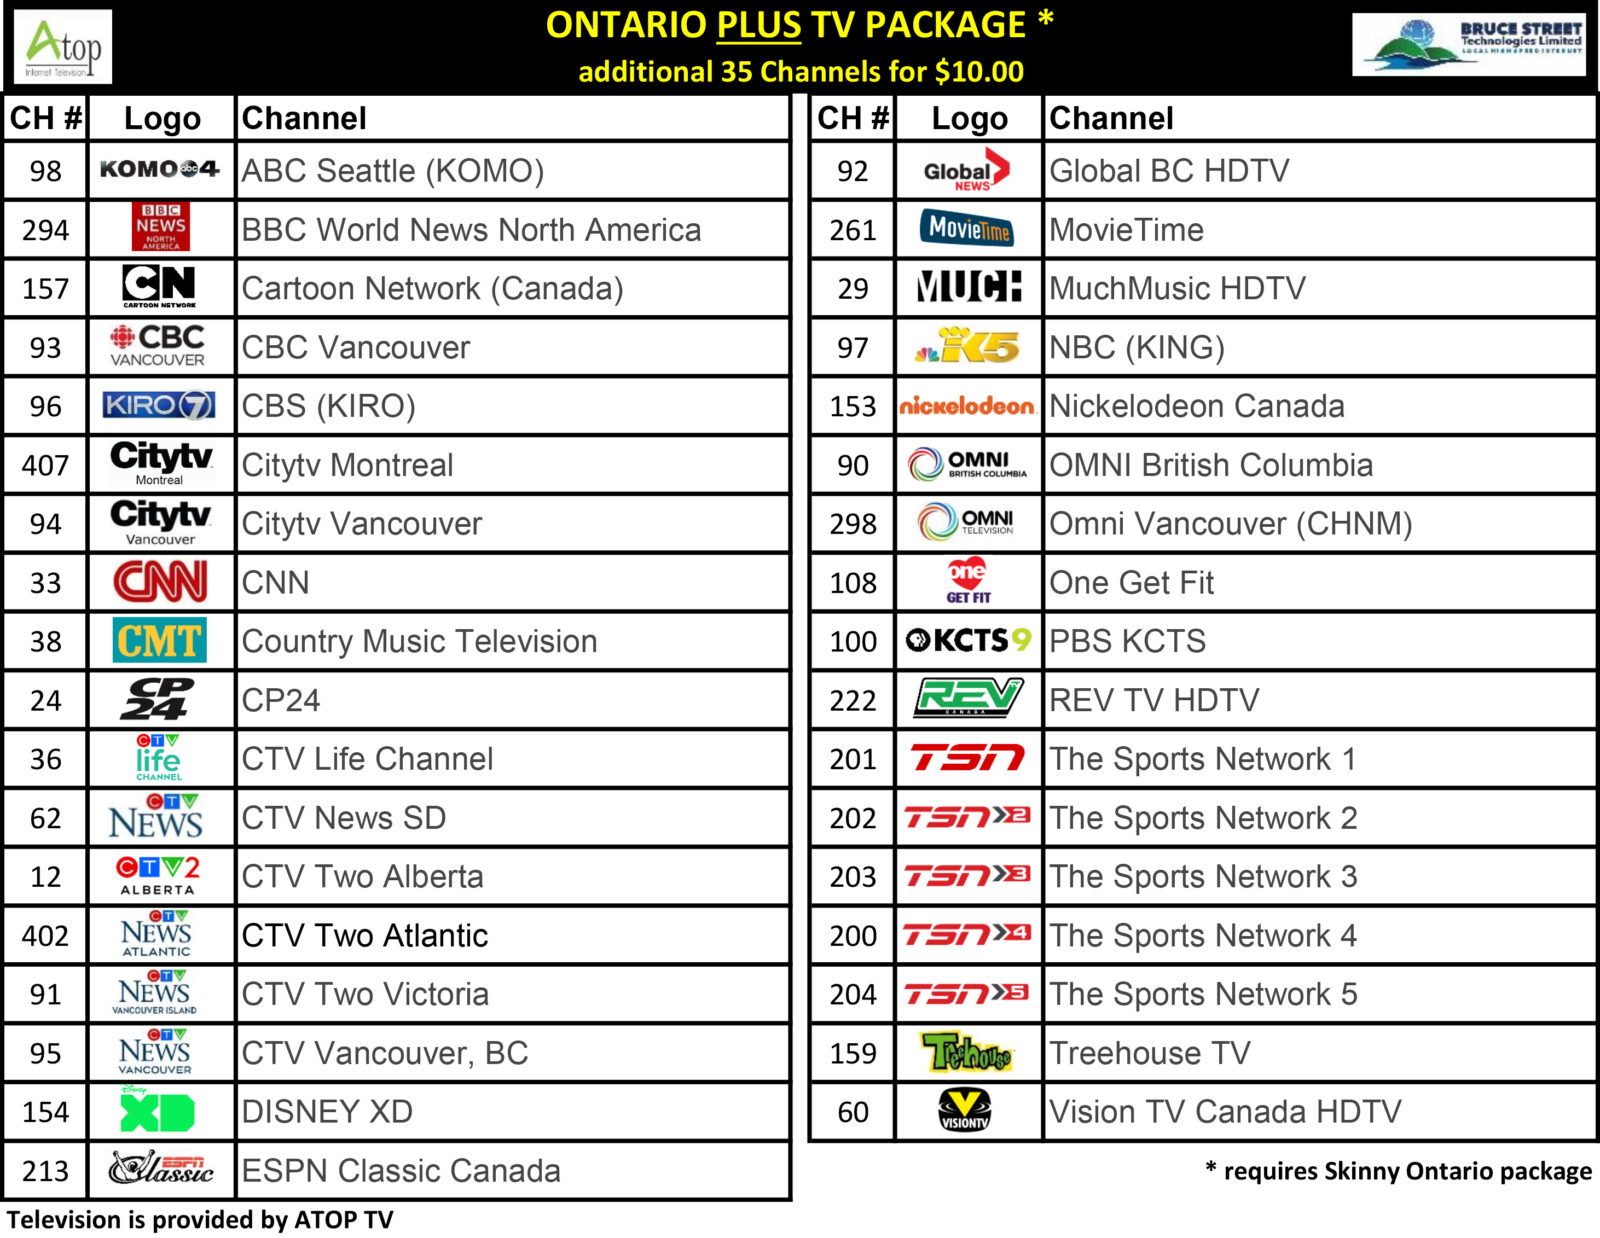 ATOP Ontario Plus TV Package